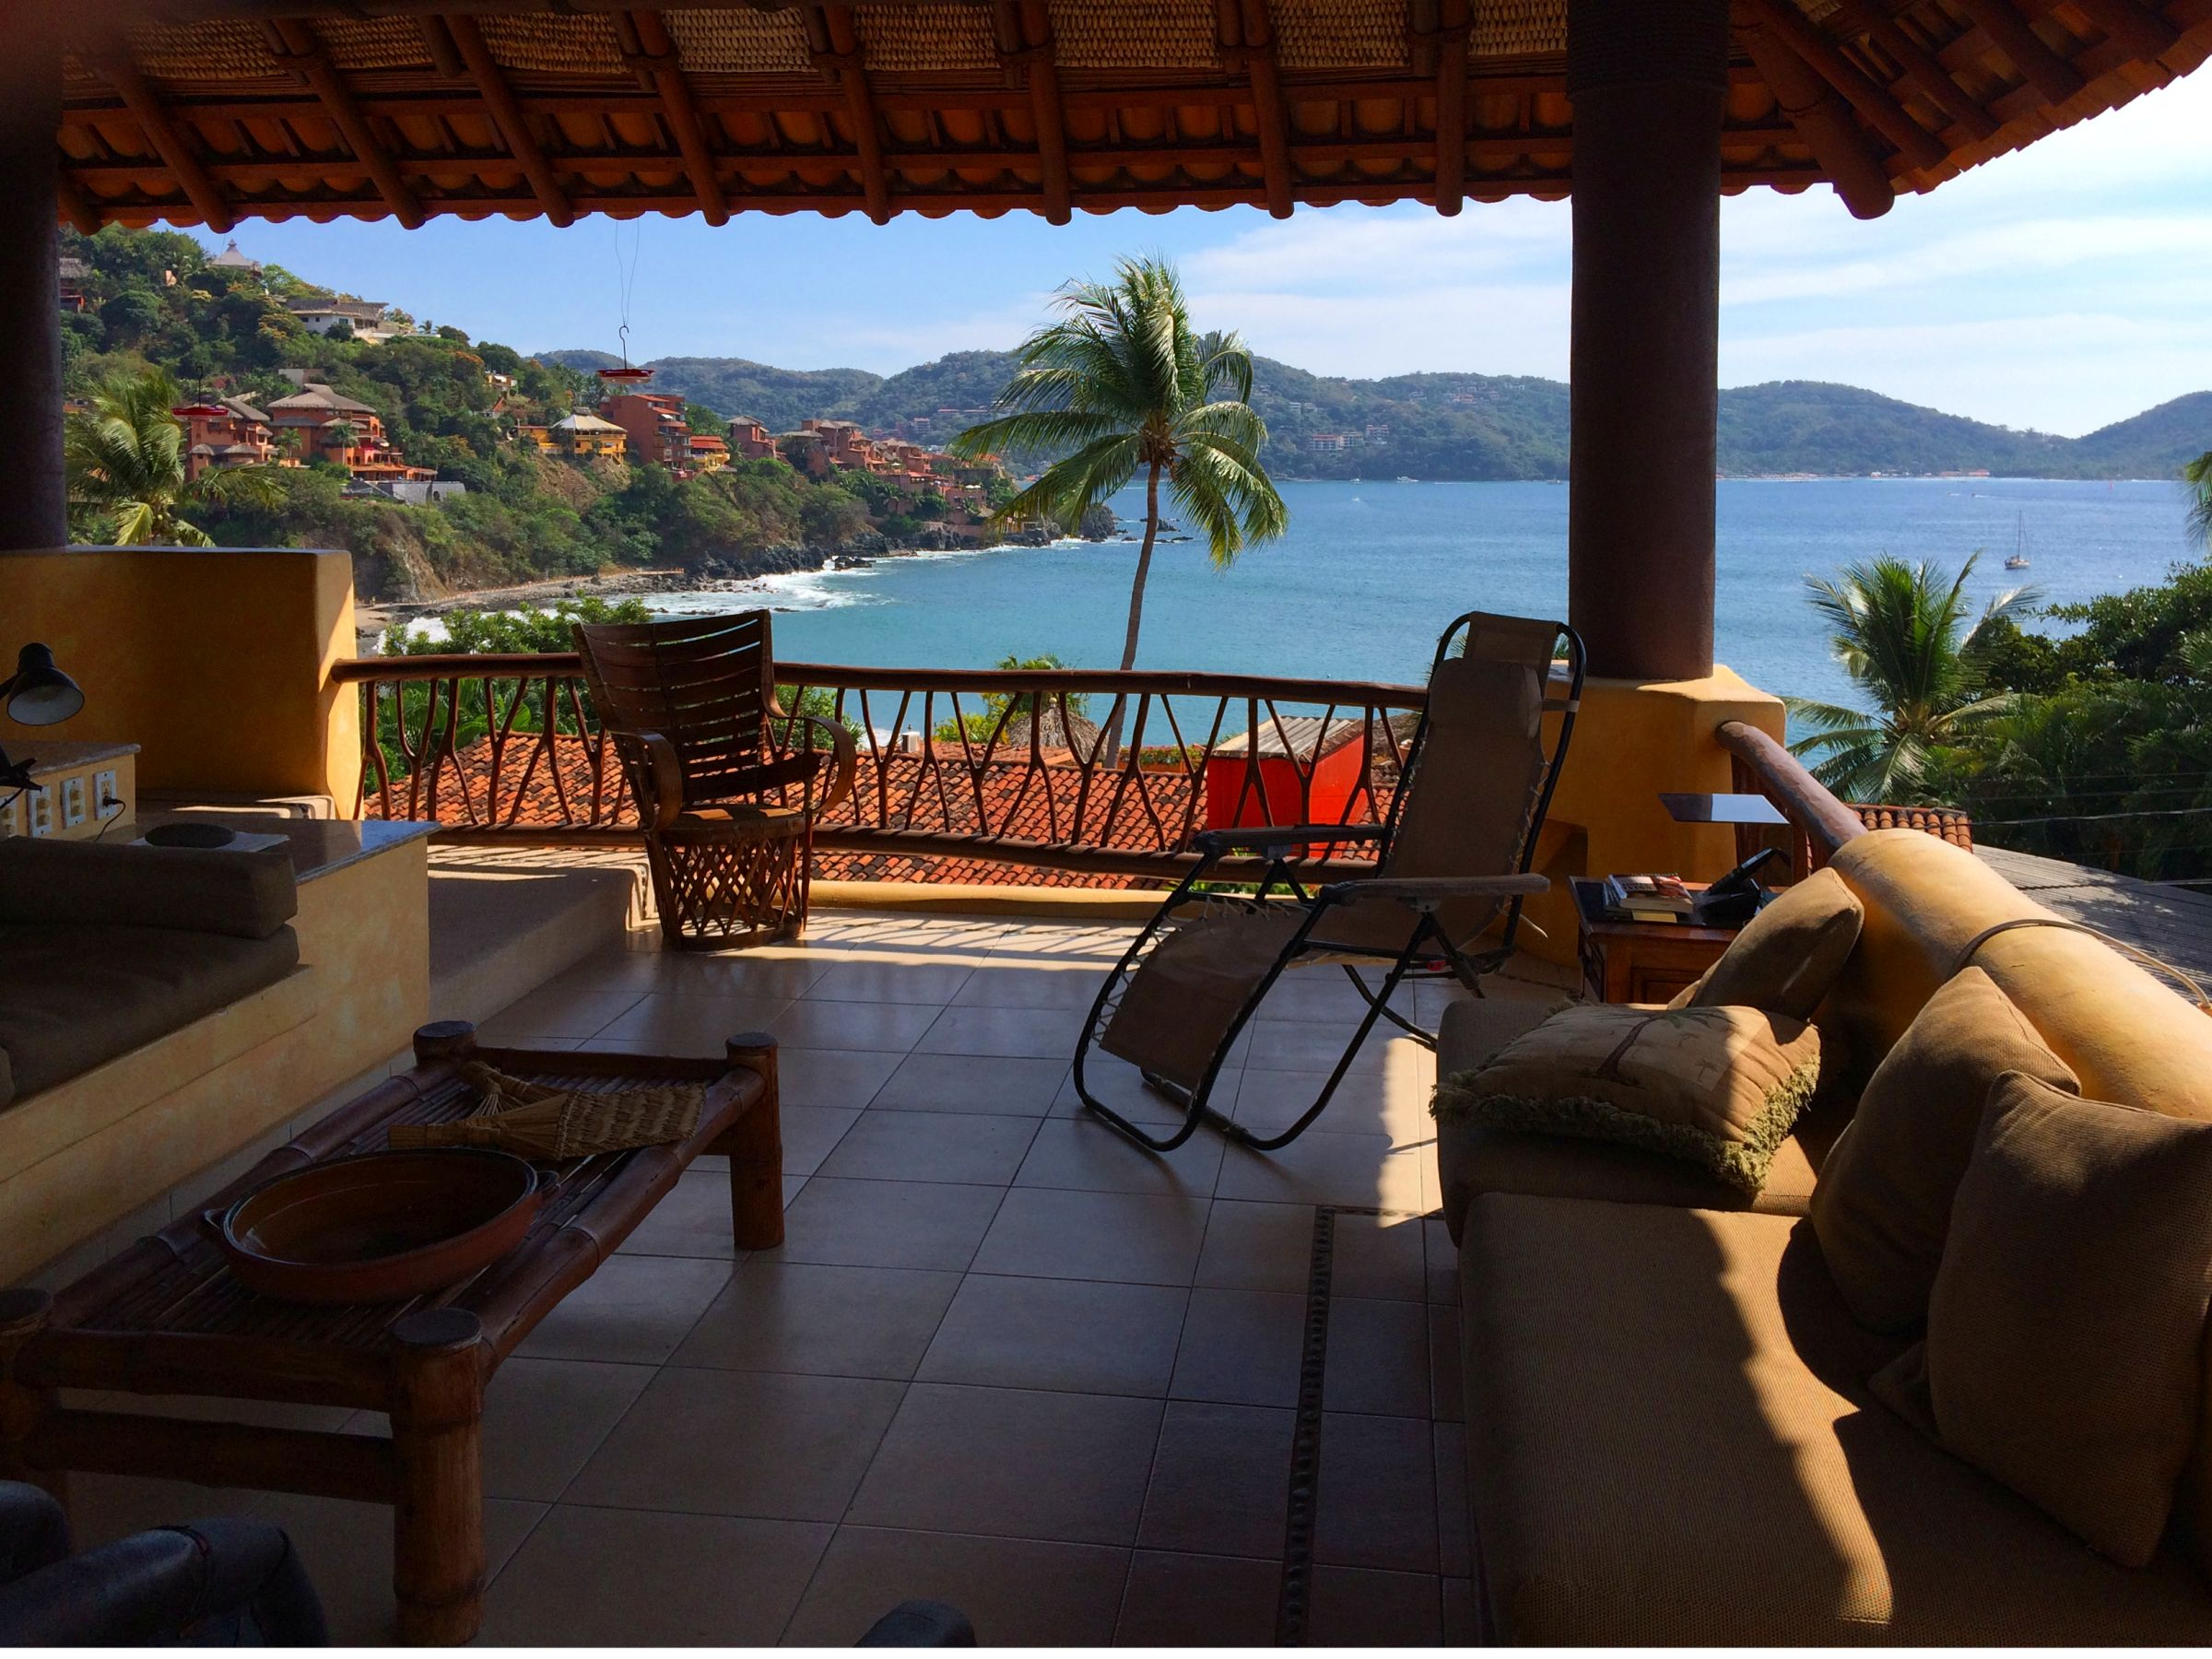 Playa Madera Hilltop Home with view of Zihuatanejo Bay